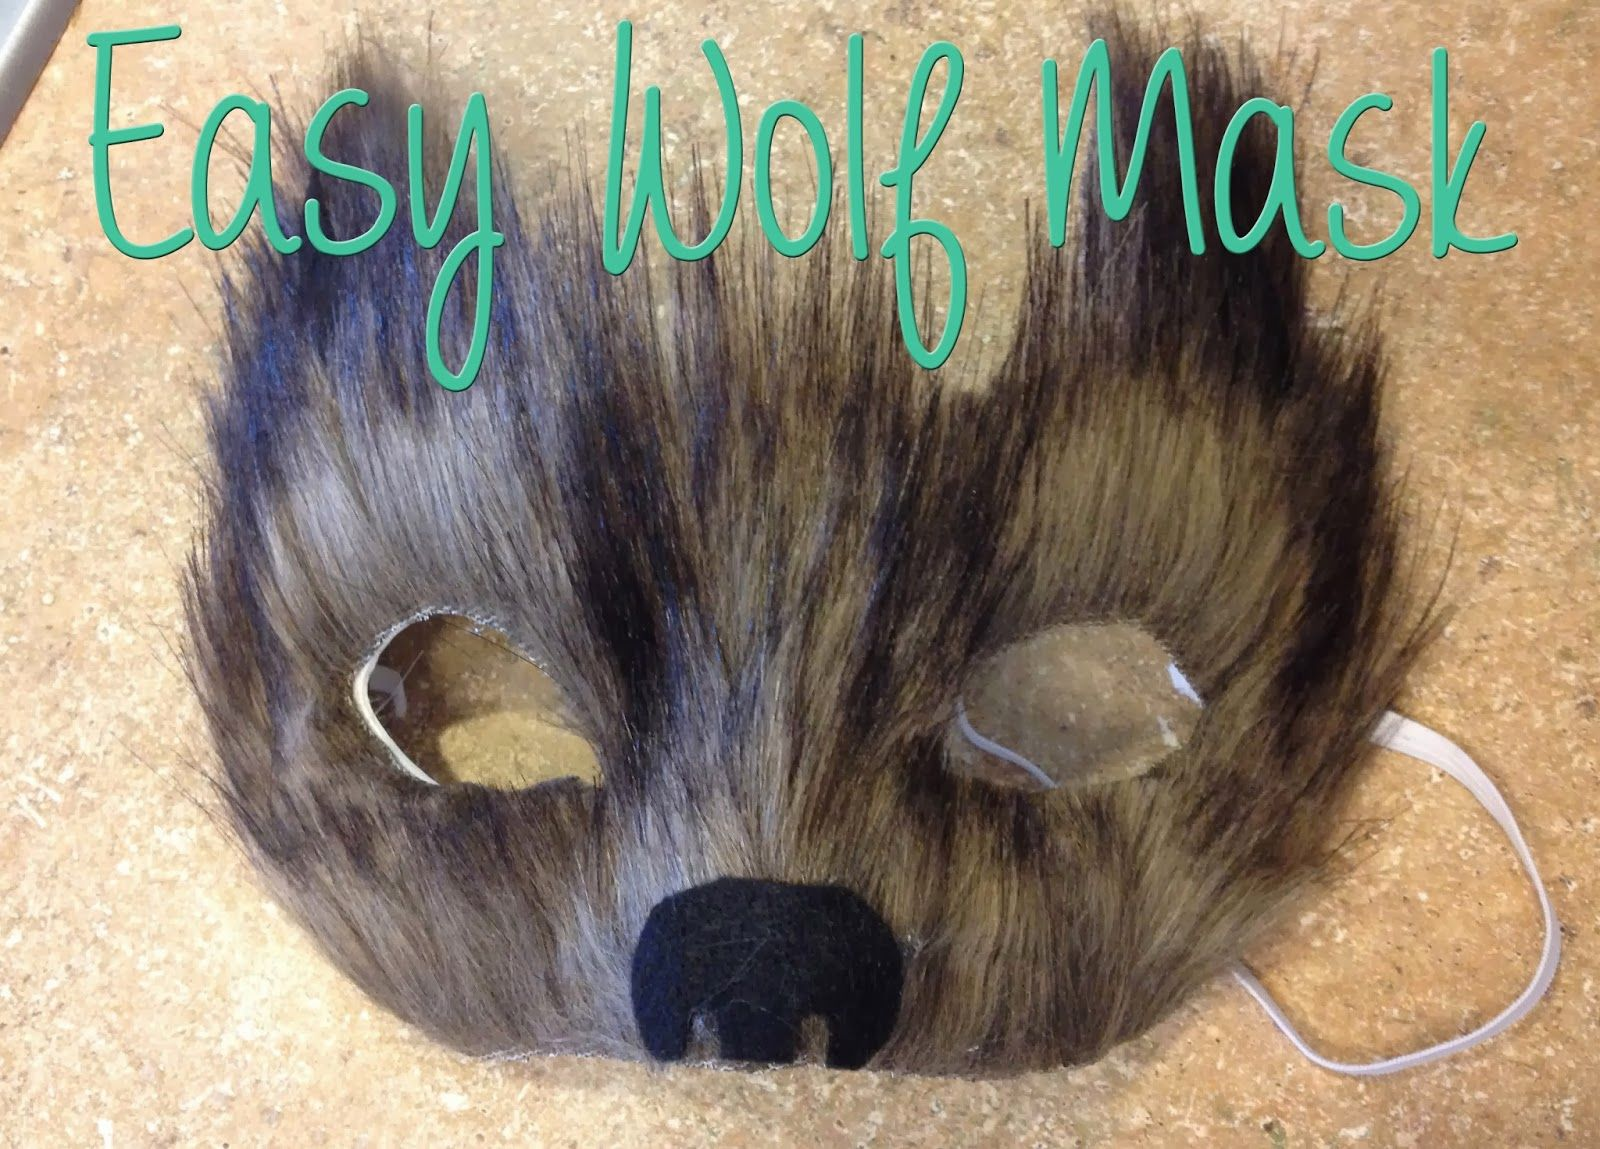 Two naps by noon diy simple big bad wolf mask for halloween two naps by noon diy simple big bad wolf mask for halloween solutioingenieria Choice Image